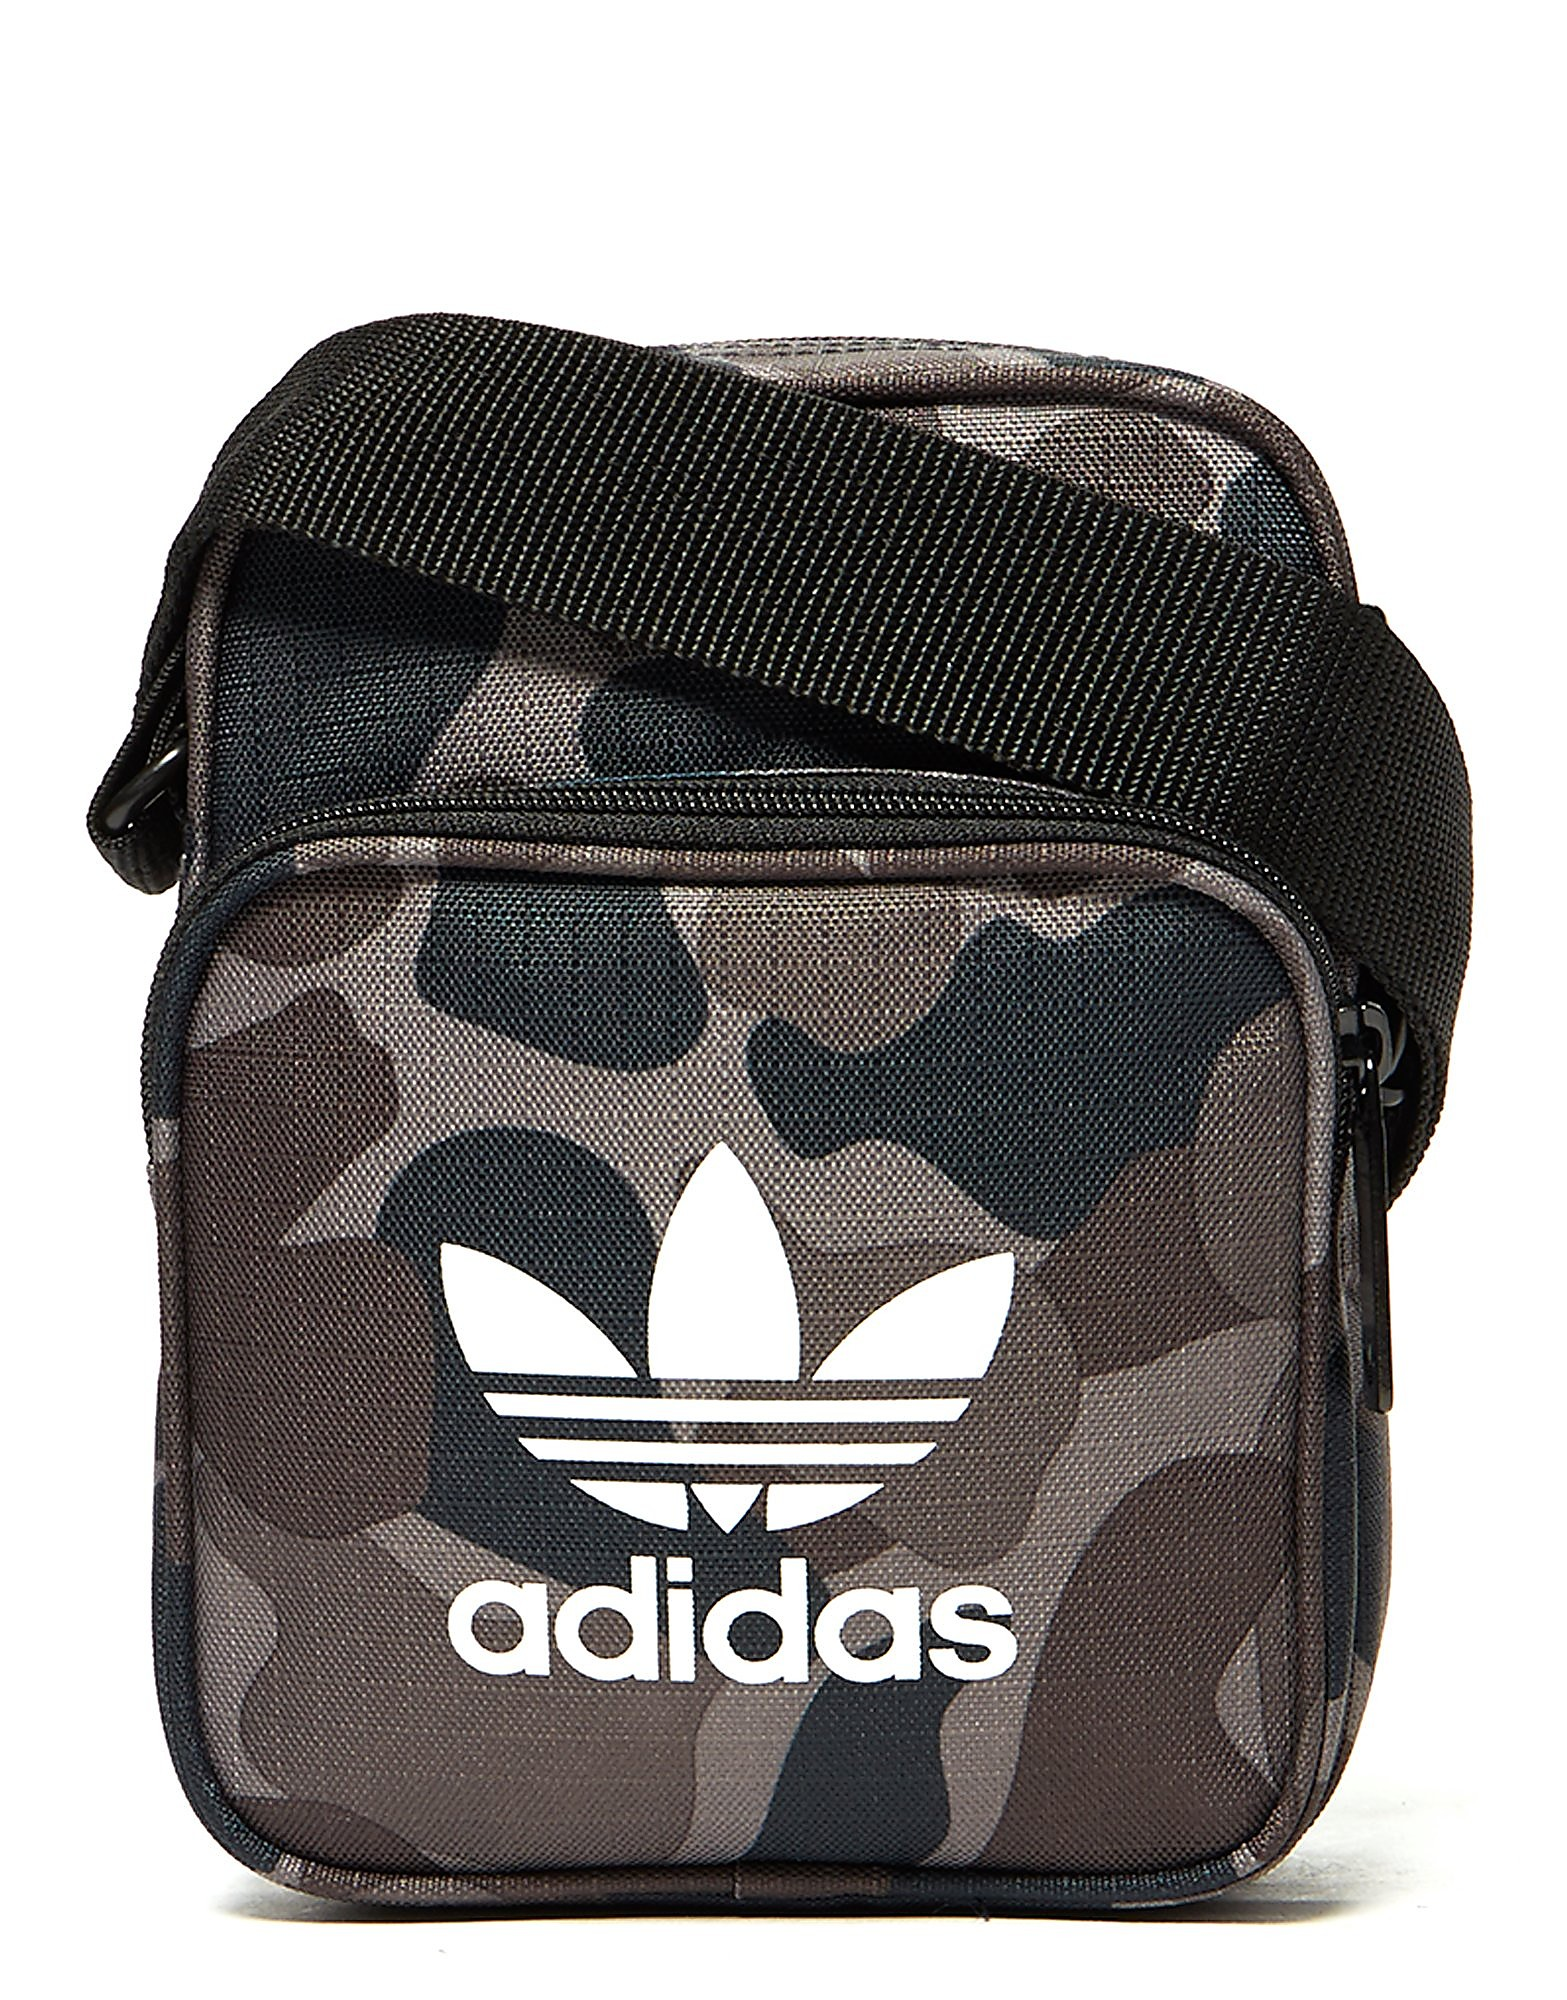 adidas Originals Camo Small Items Bag